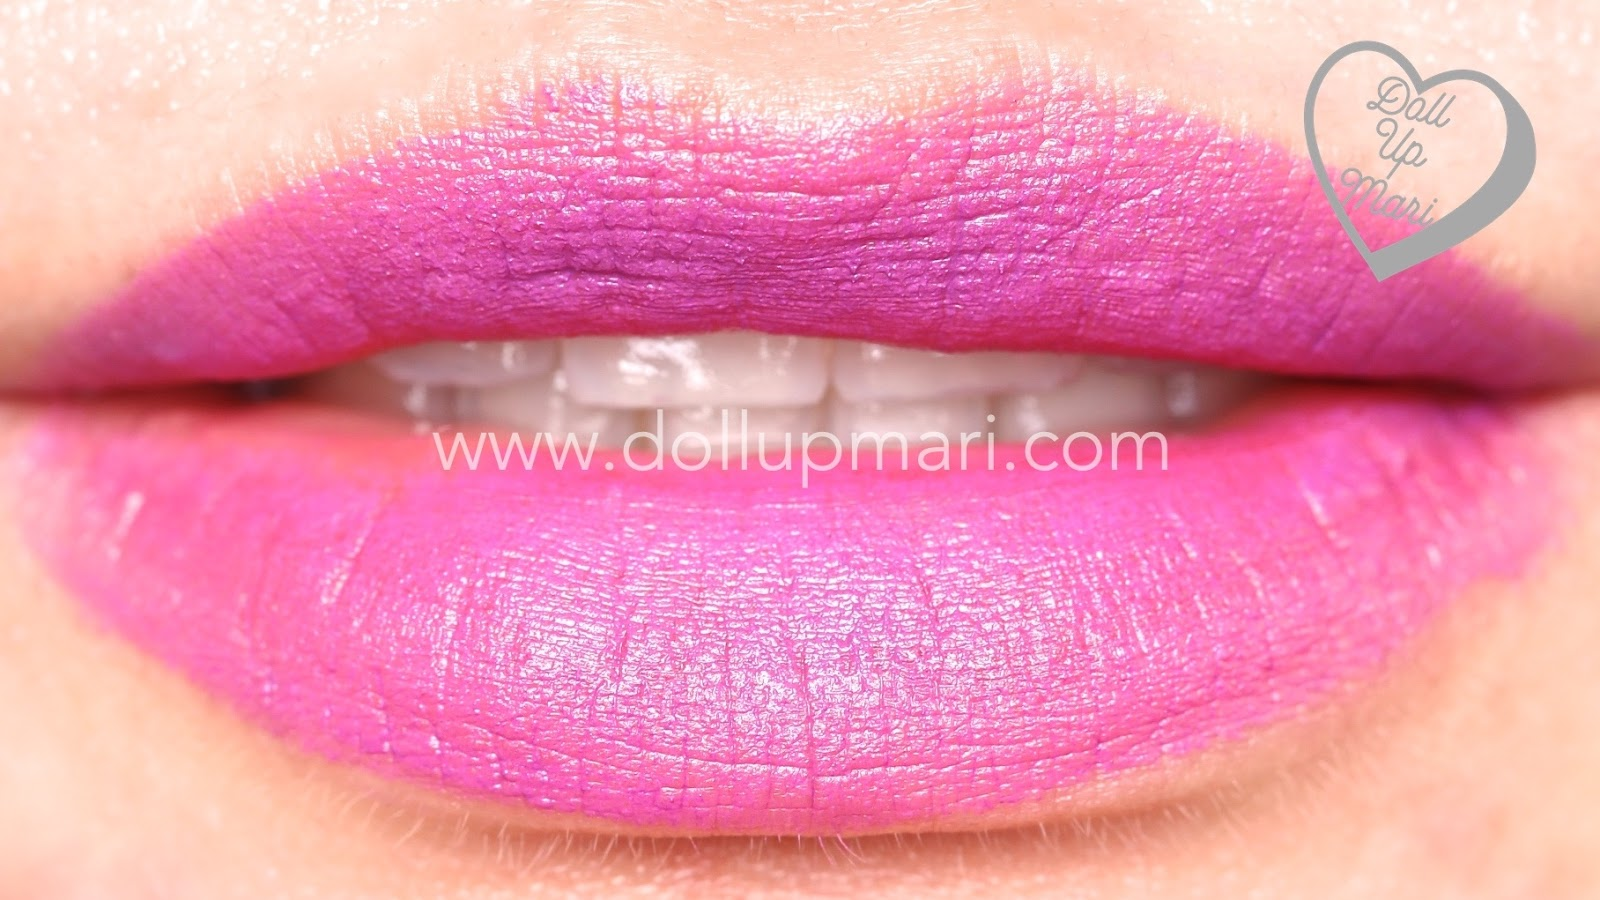 lip swatch of Hot Plum shade of AVON Perfectly Matte Lipstick